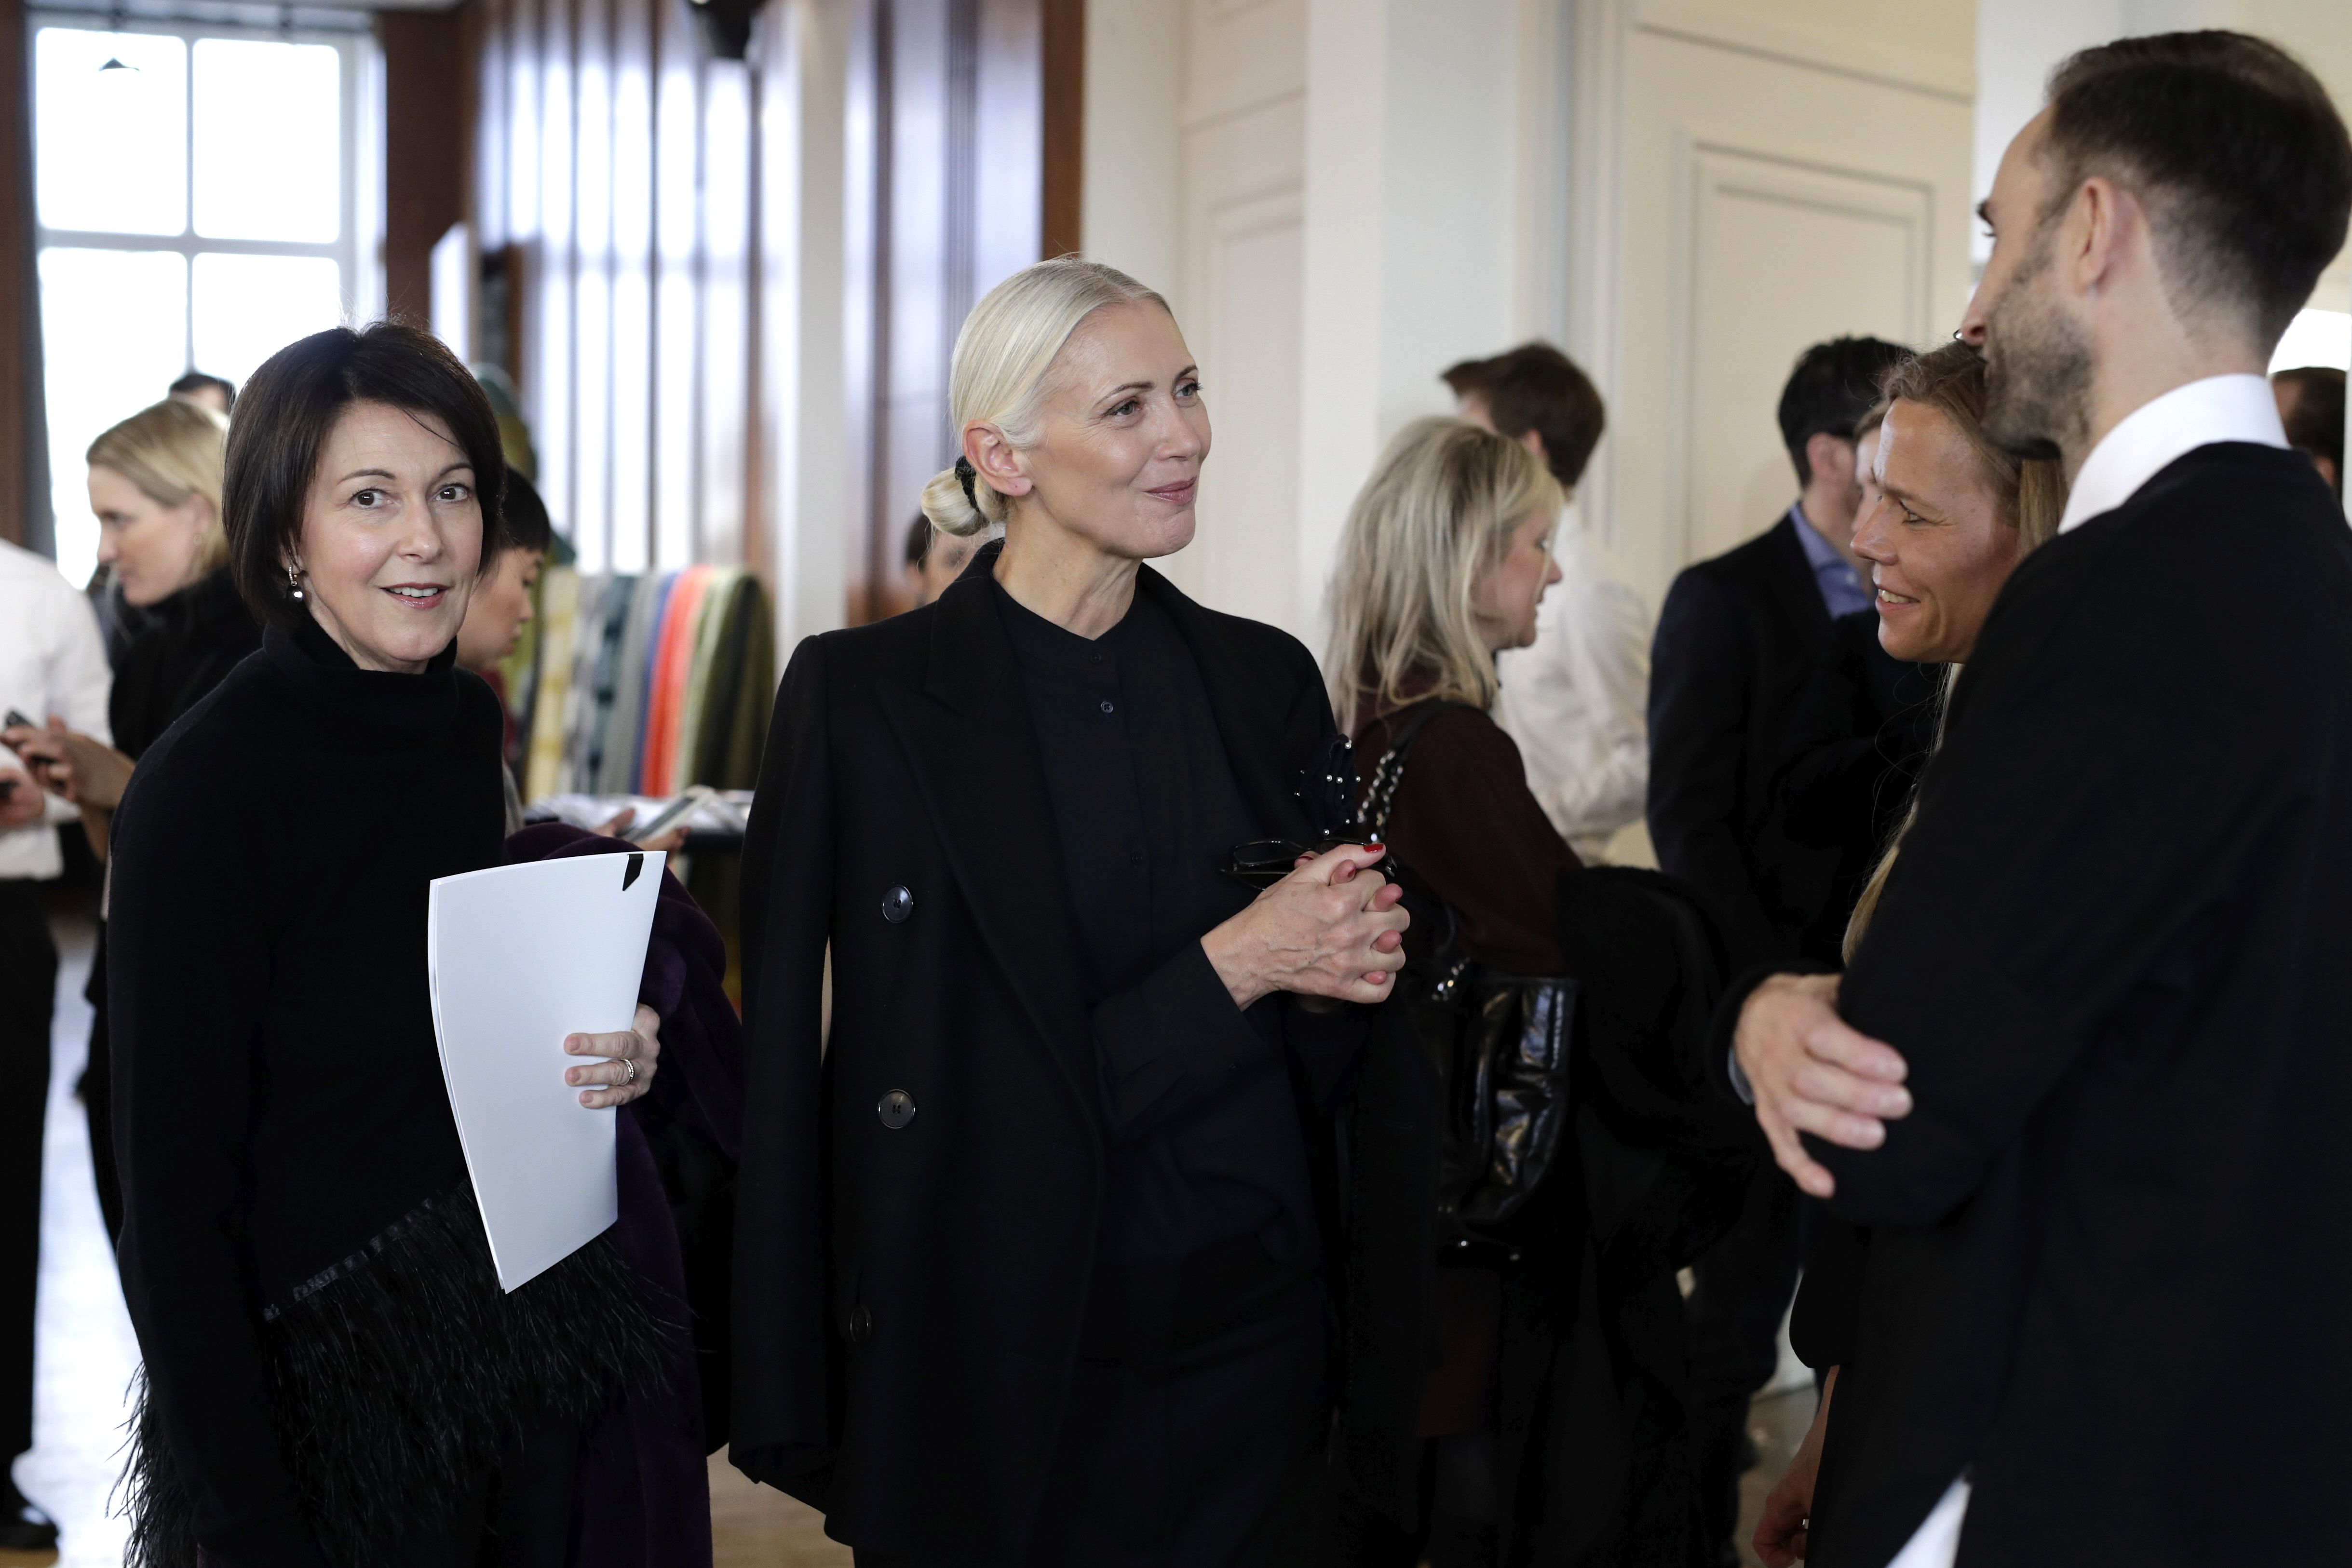 Christiane Arp chats with Antonia Goy and Bjoern Kubeja of Working Title during the Vogue Salon during 'Der Berliner Salon' AW 18/19 at Kronprinzenpalais on January 16, 2018 in Berlin, Germany.